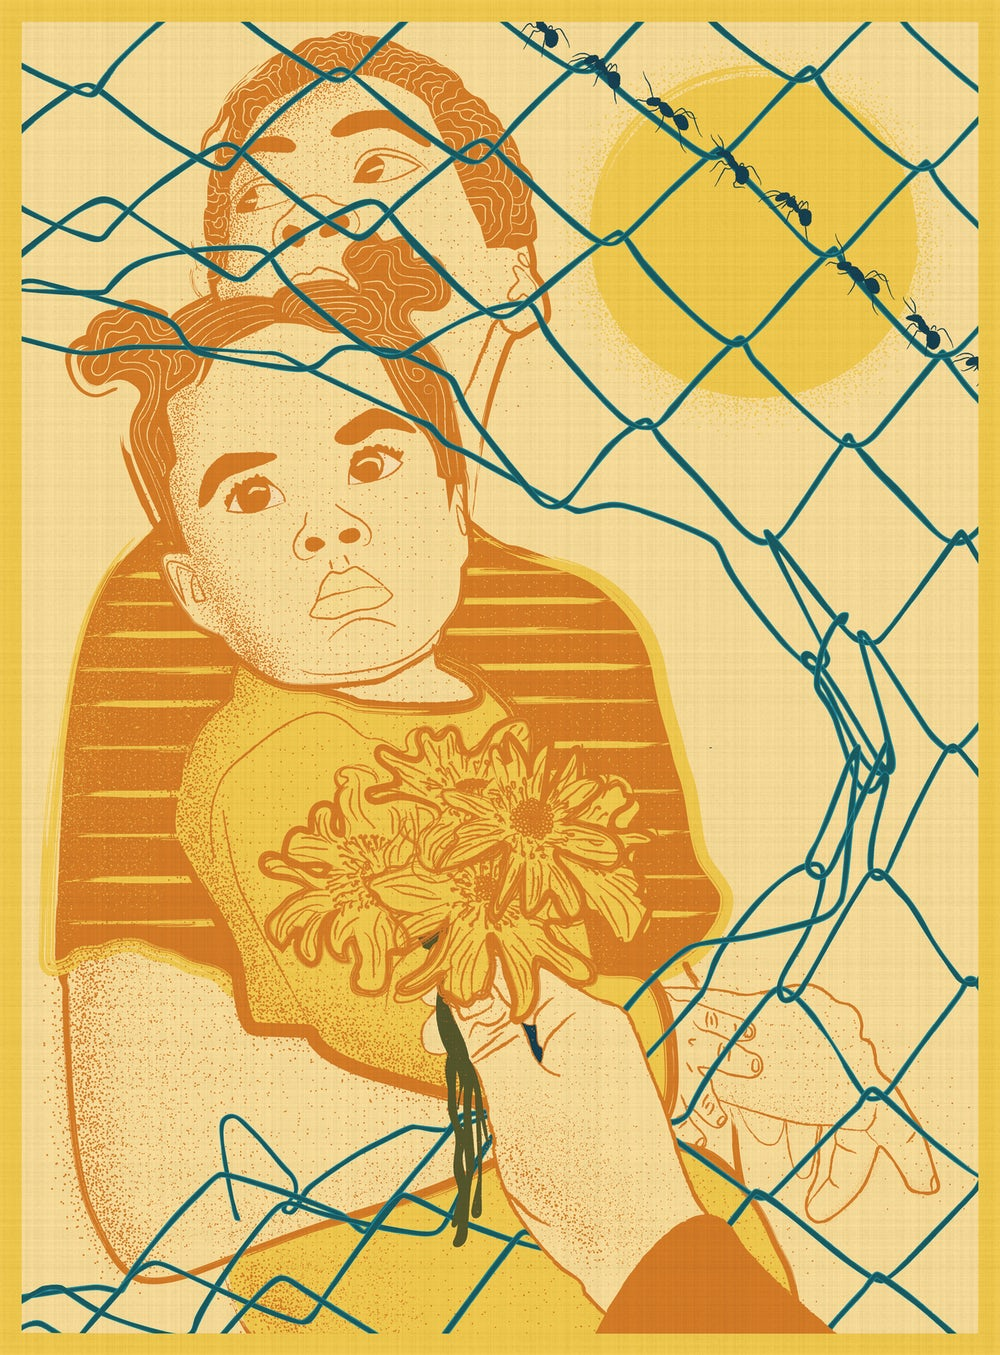 Illustration of a woman holding a small child behind a chain link fence